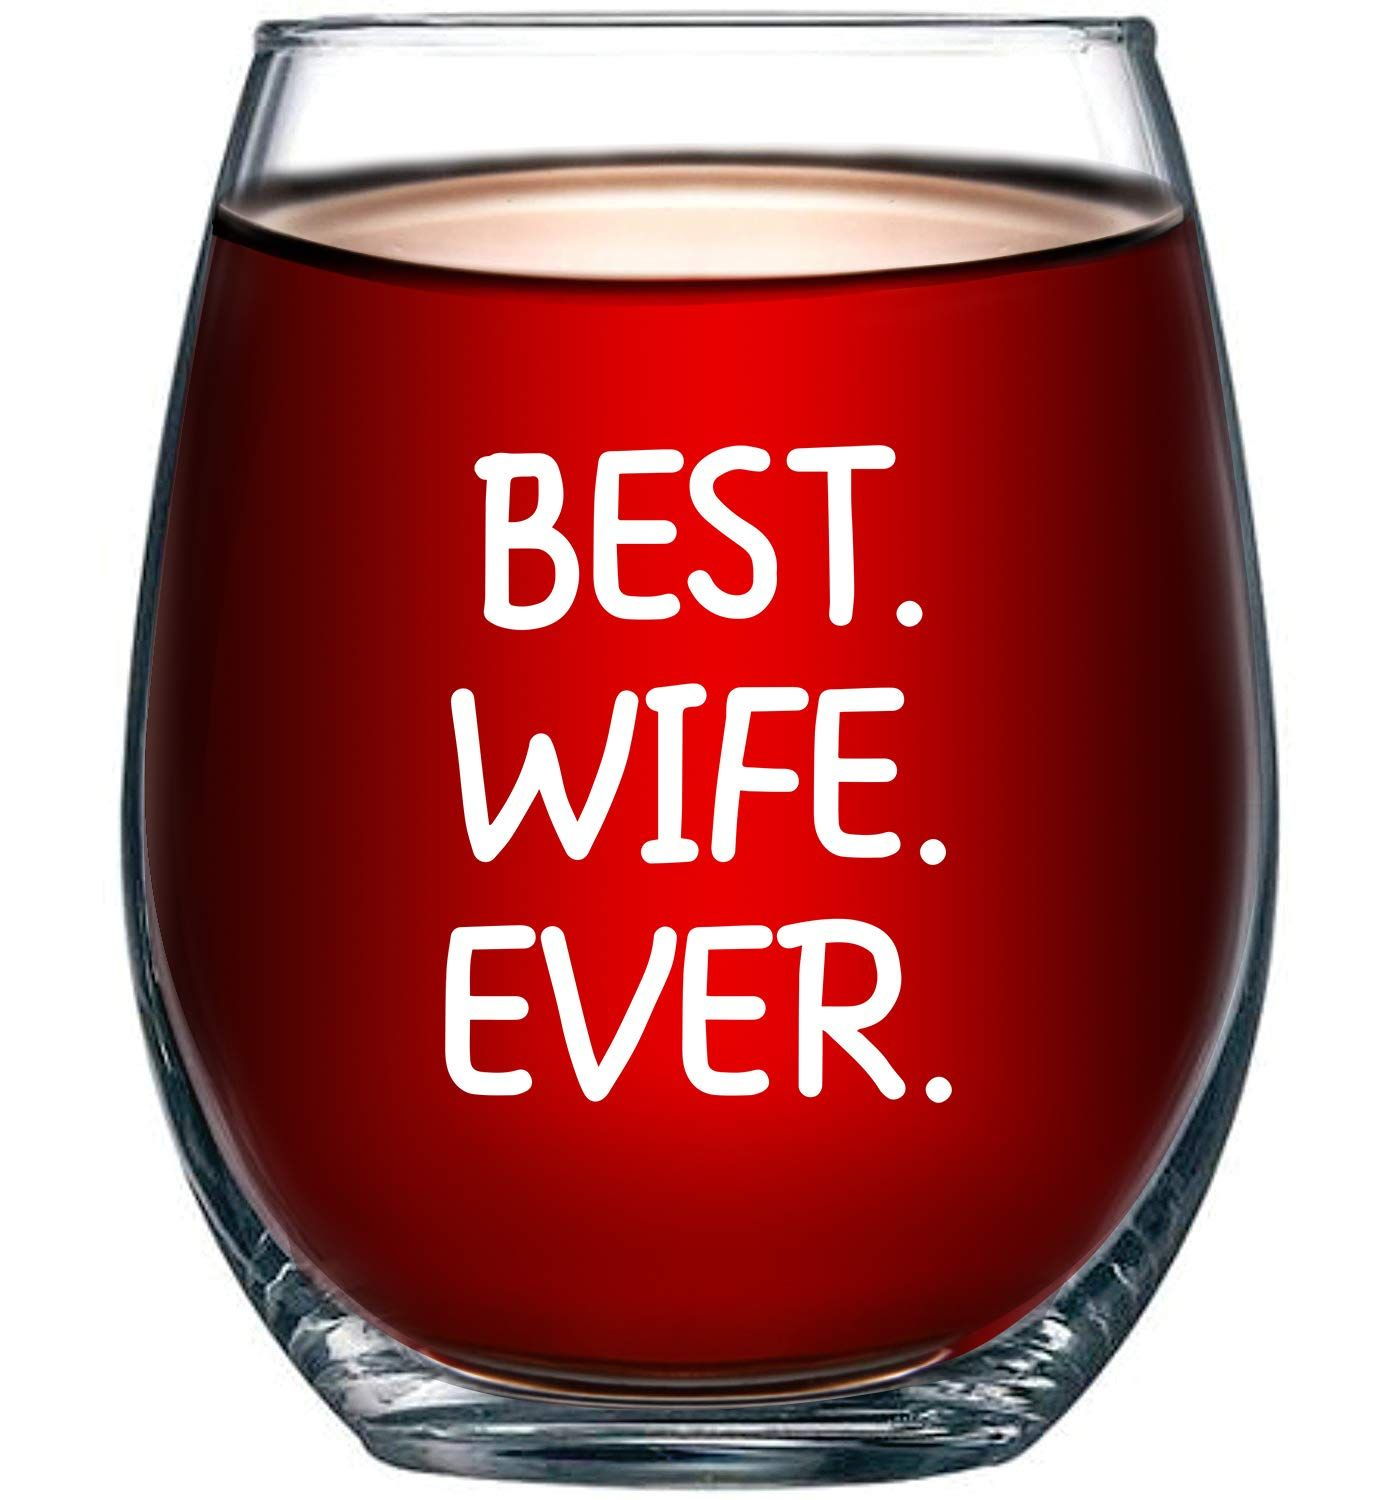 Best Wife Ever Wine Glass 15oz Unique Romantic Gift Idea For Her Wife Aunt Grandma From A Son Daughter Wine Glass Unique Romantic Gifts Unique Wine Glass